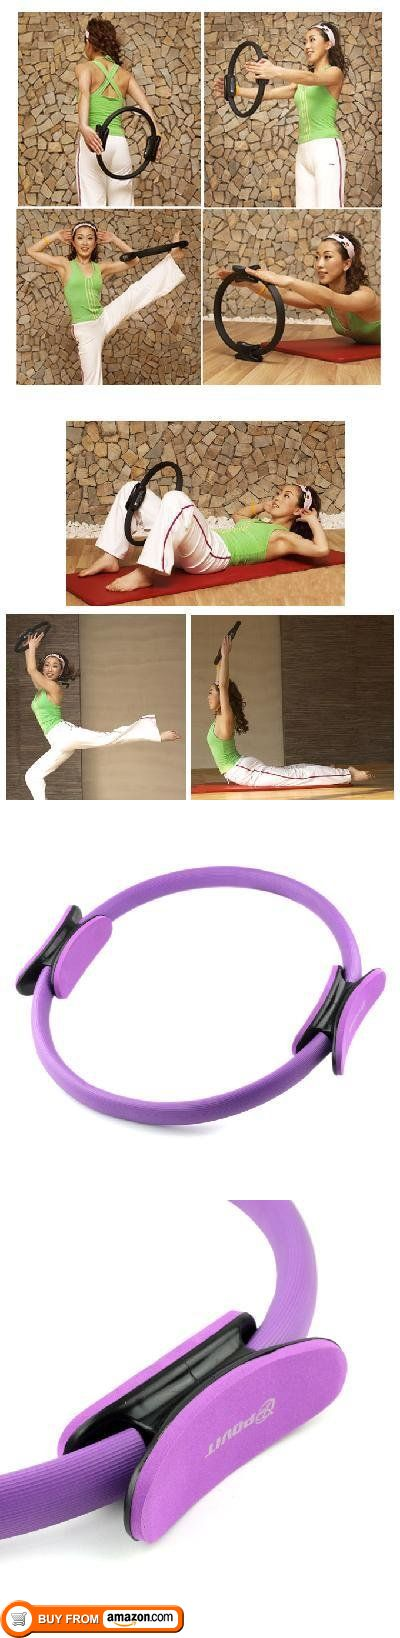 Pilate Ring Pilates Magic Fitness Circle Yoga New, Features: Rings are commonly used in Pilates to add intensity to floor exercises. The ring's resistance speeds up toning by targeting specific muscles. Especially useful in problem areas like the inne..., #Sporting Goods, #Fitness Circles, $14.87